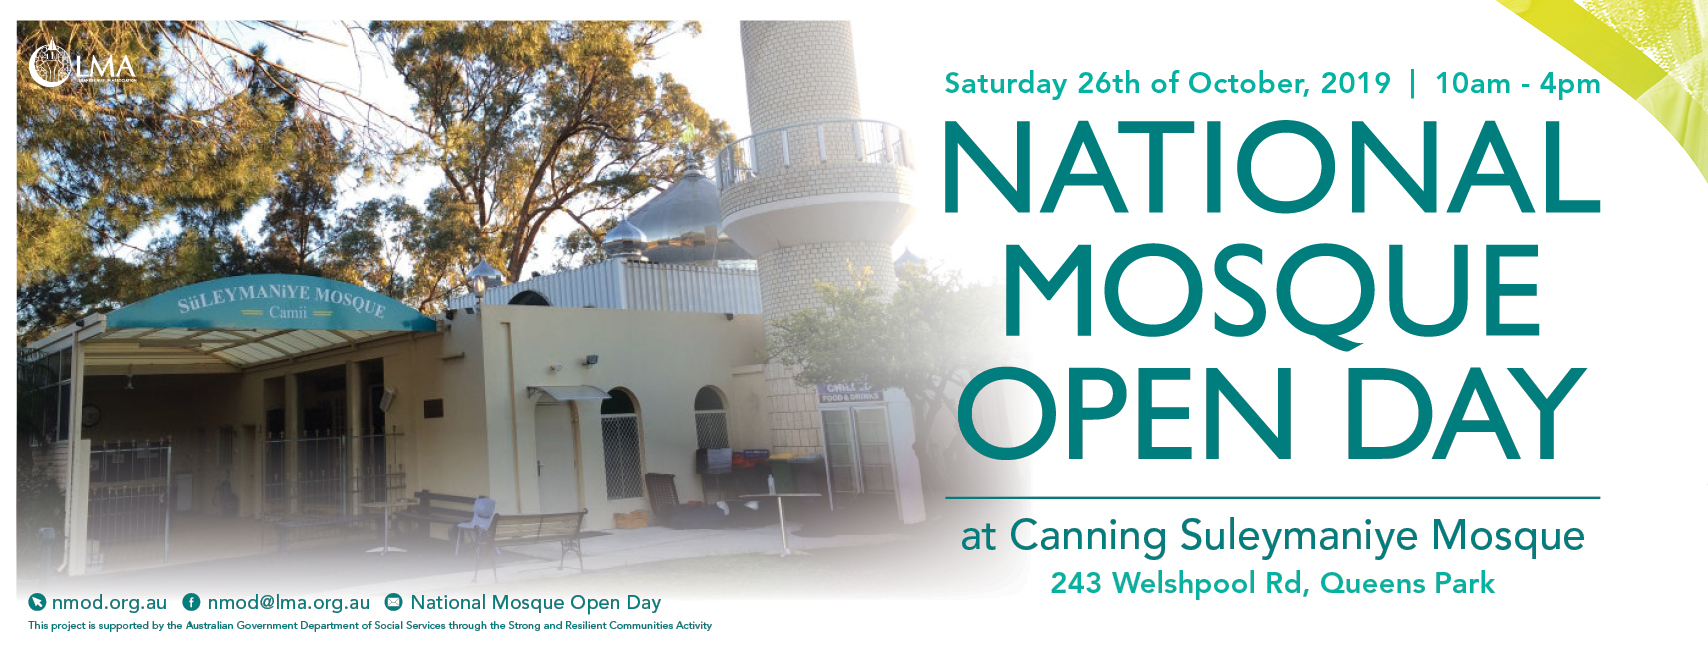 Canning Suleymaniye Mosque Open Day